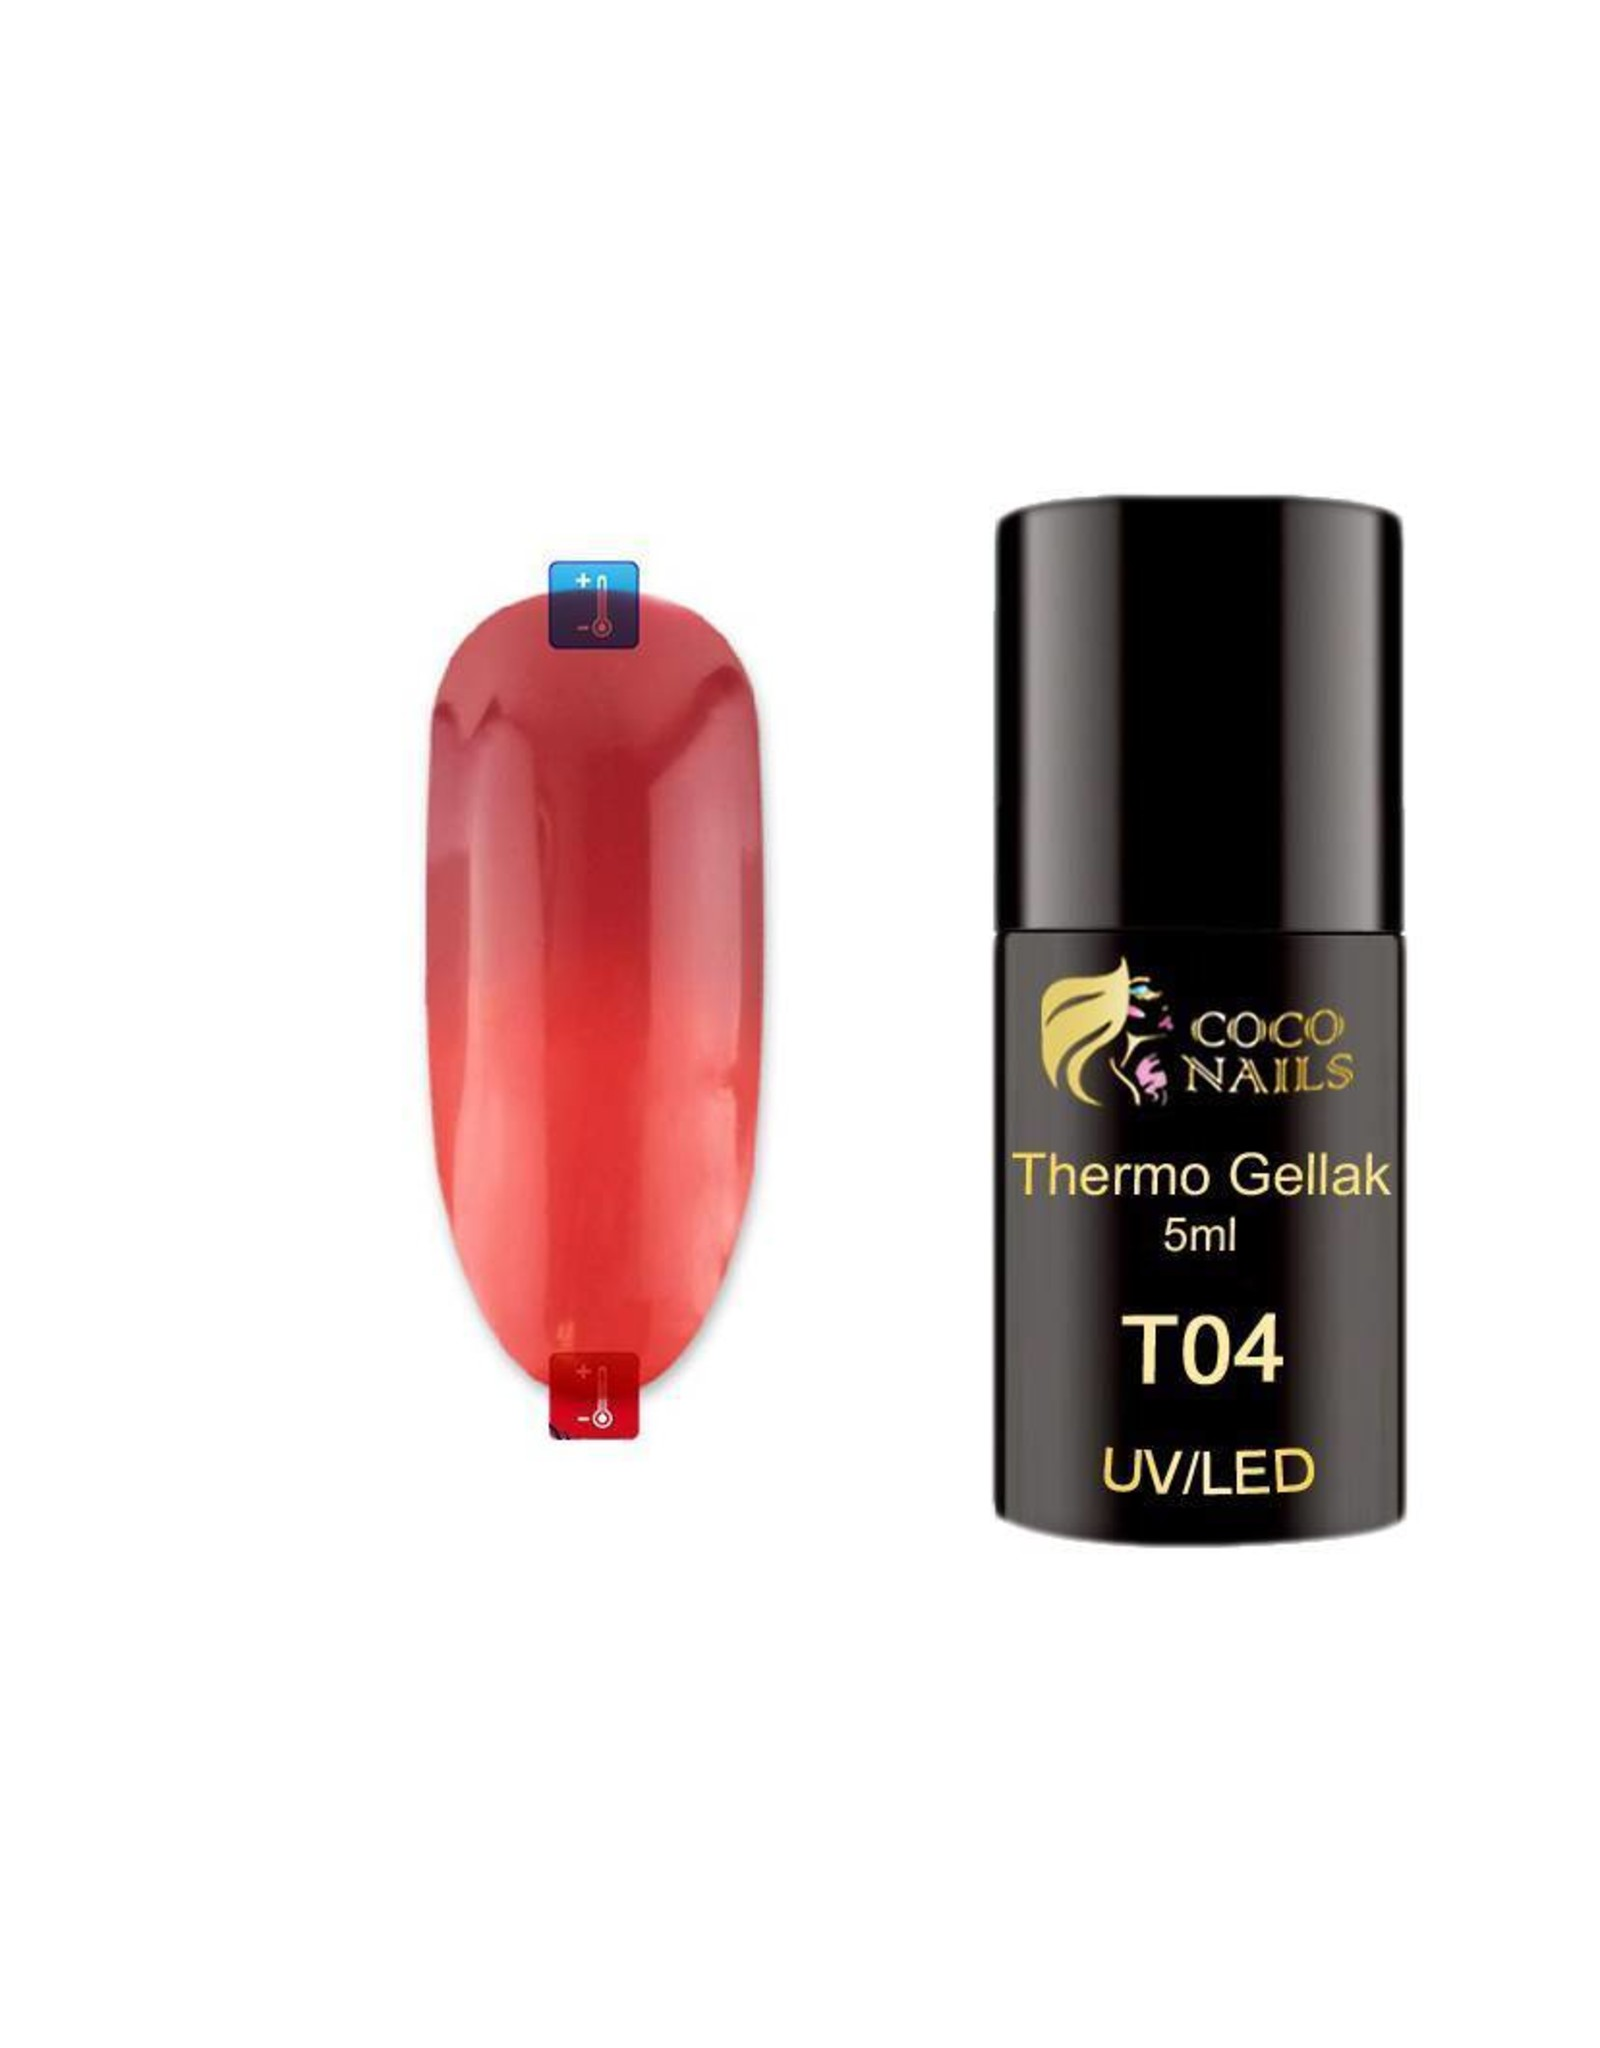 Coconails Thermo gellak Donker Rood/Rood 5 ml